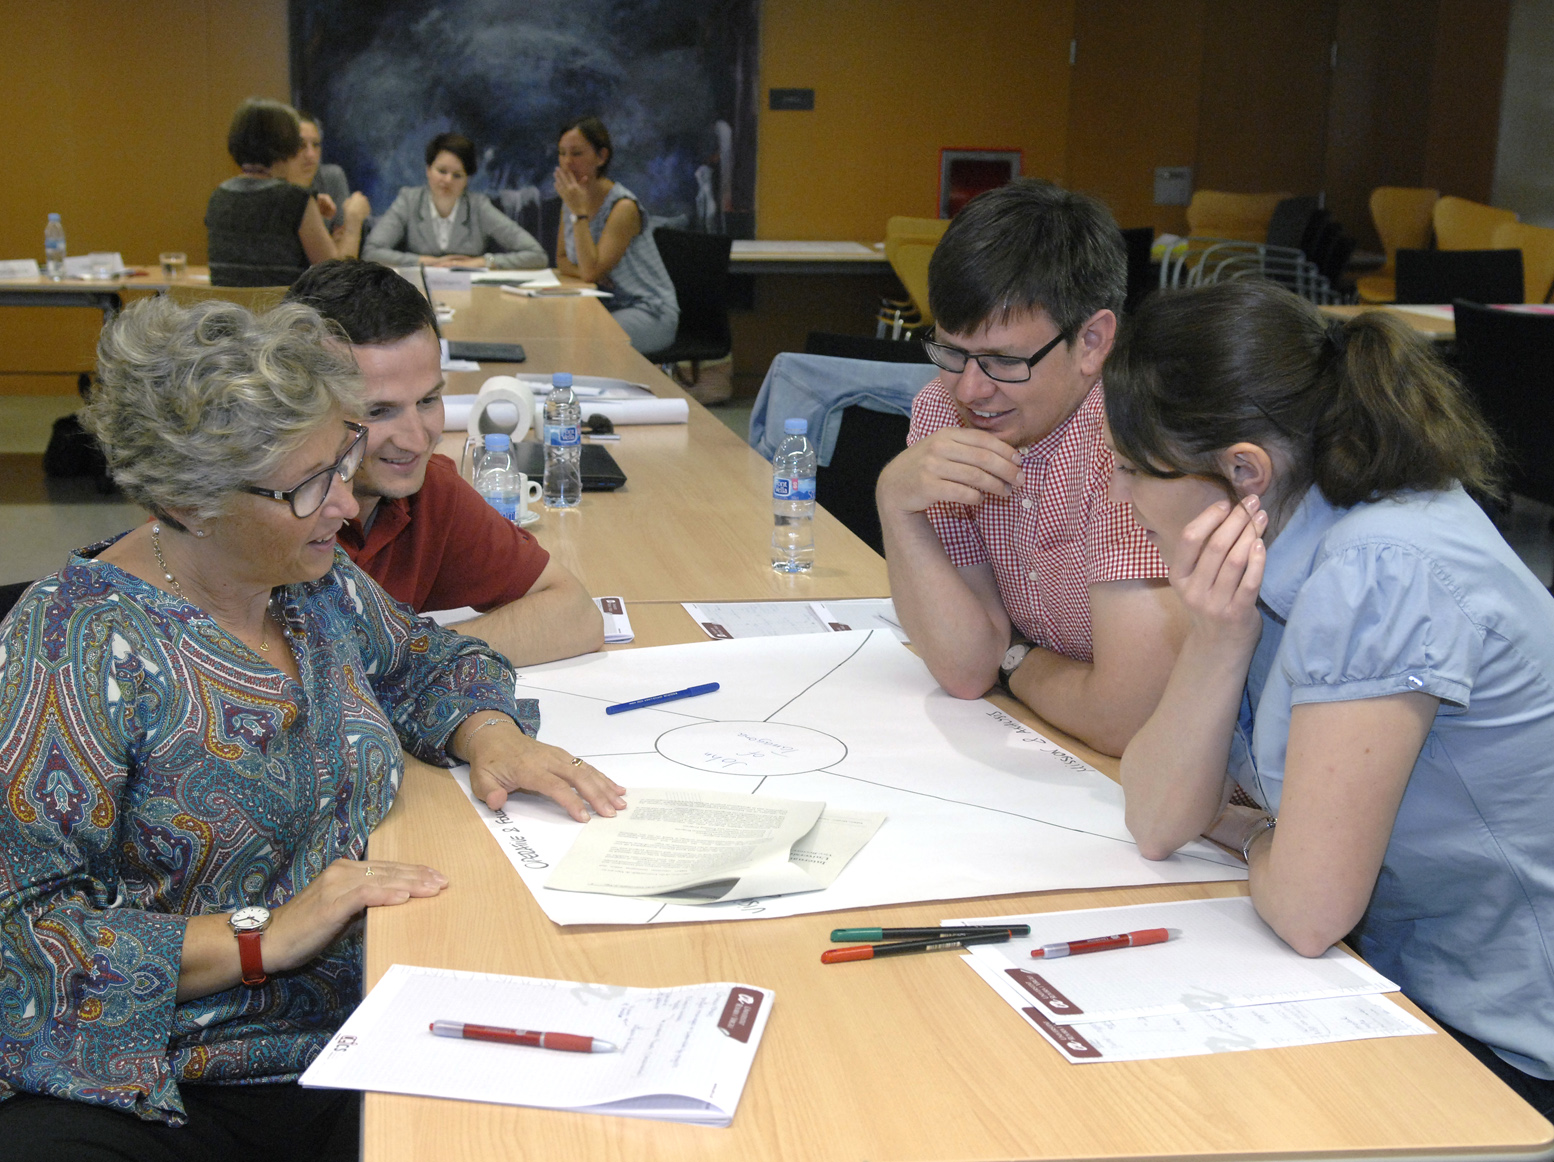 International Staff Week participants, working in groups